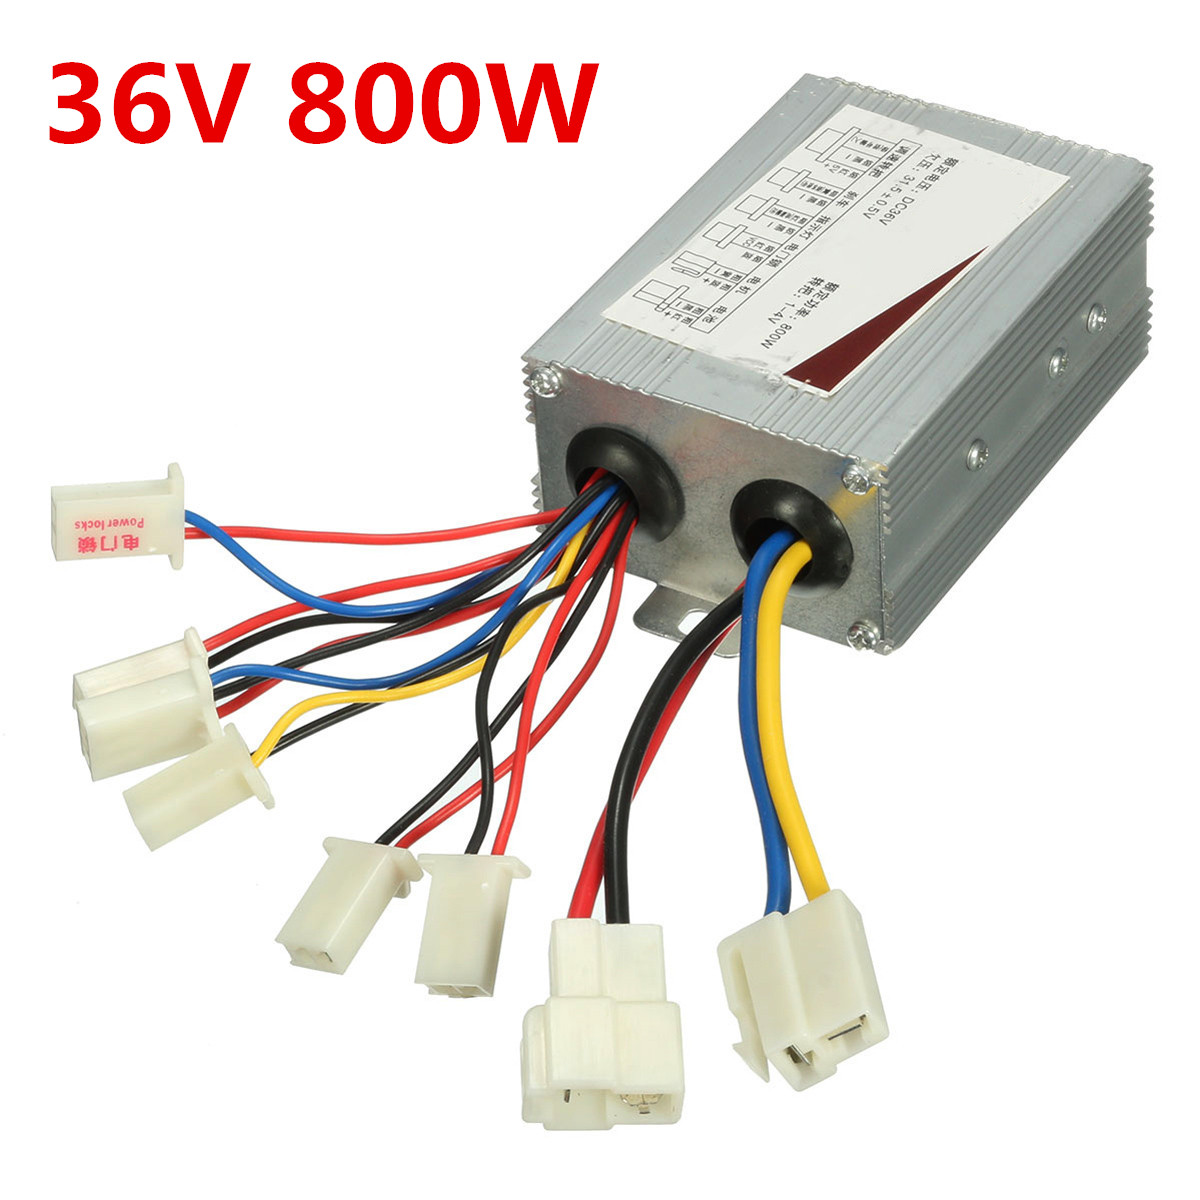 36V 800W DC Brush Motor Speed Controller for Electric Scooter Bicycle E-bike Motorcycle Accessories Parts